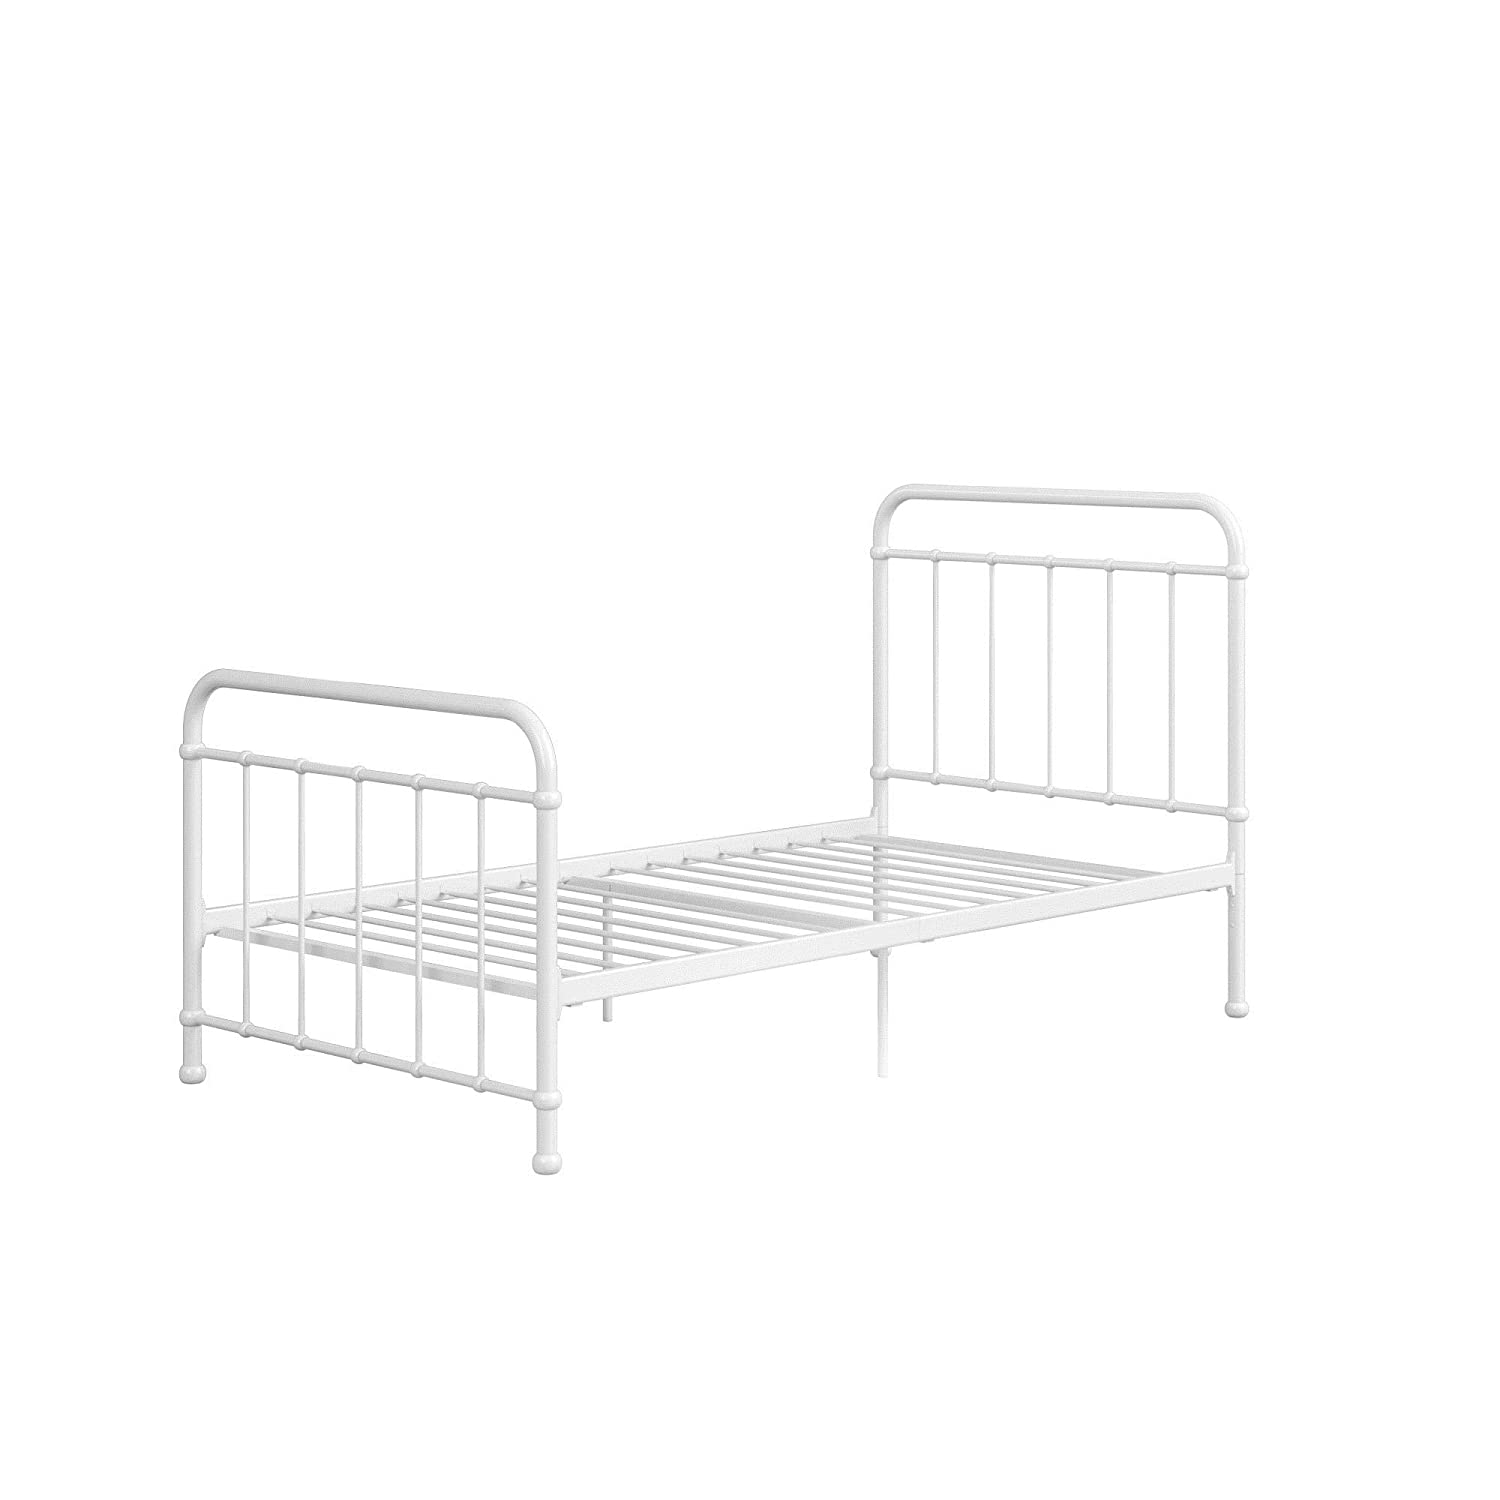 DHP 3291096 Brooklyn Iron Twin Bed White Bedroom Furniture ...